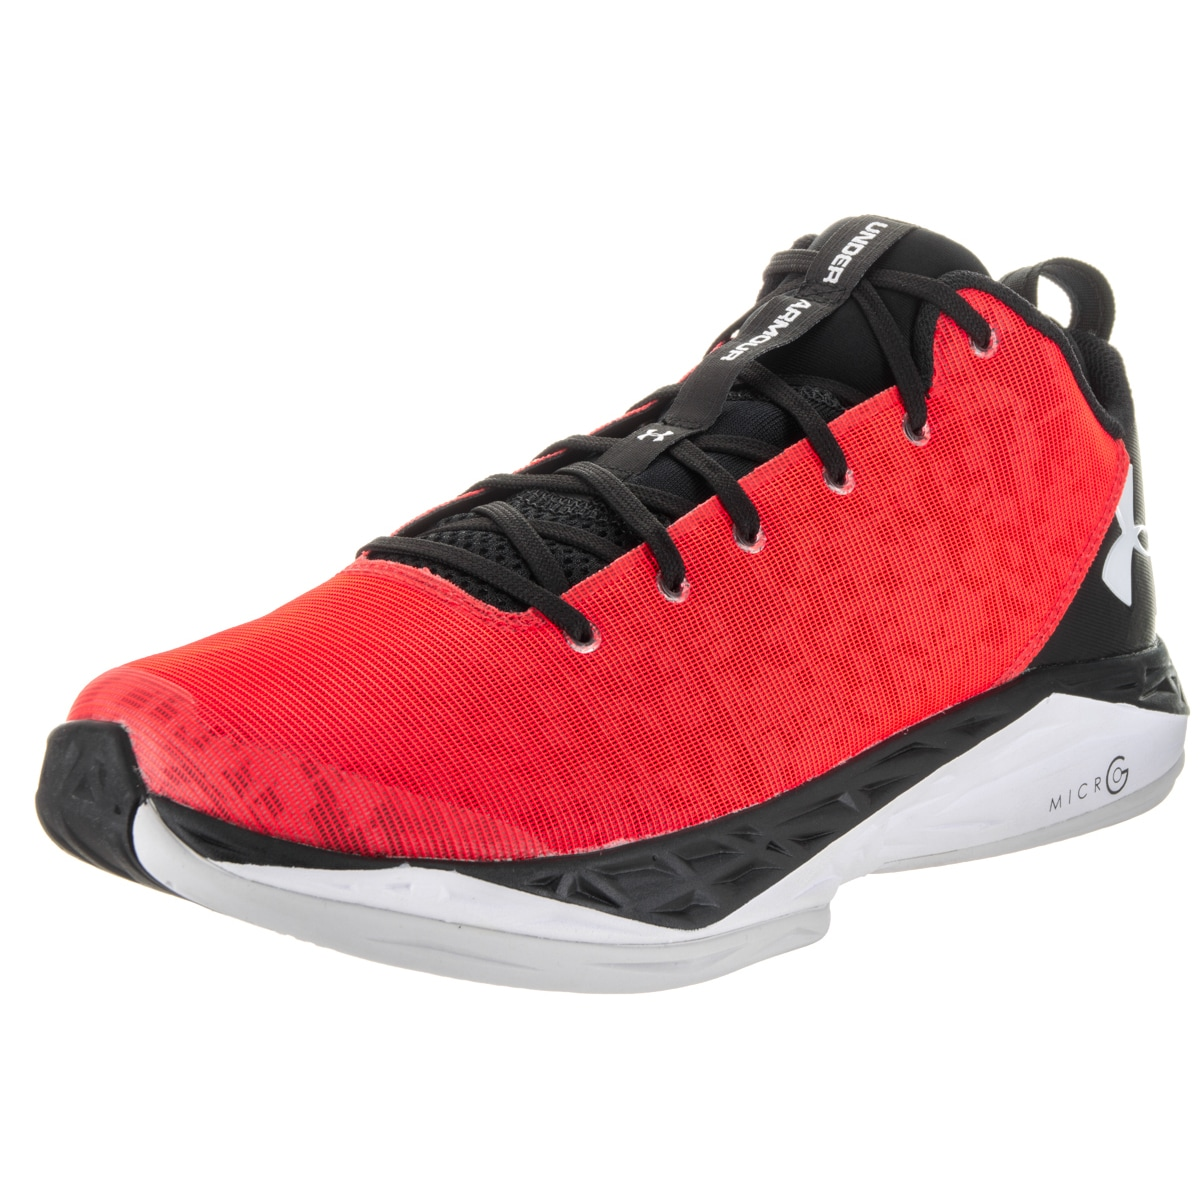 Under Armour Men's Fire Shot Red Mesh Low Basketball Shoe...